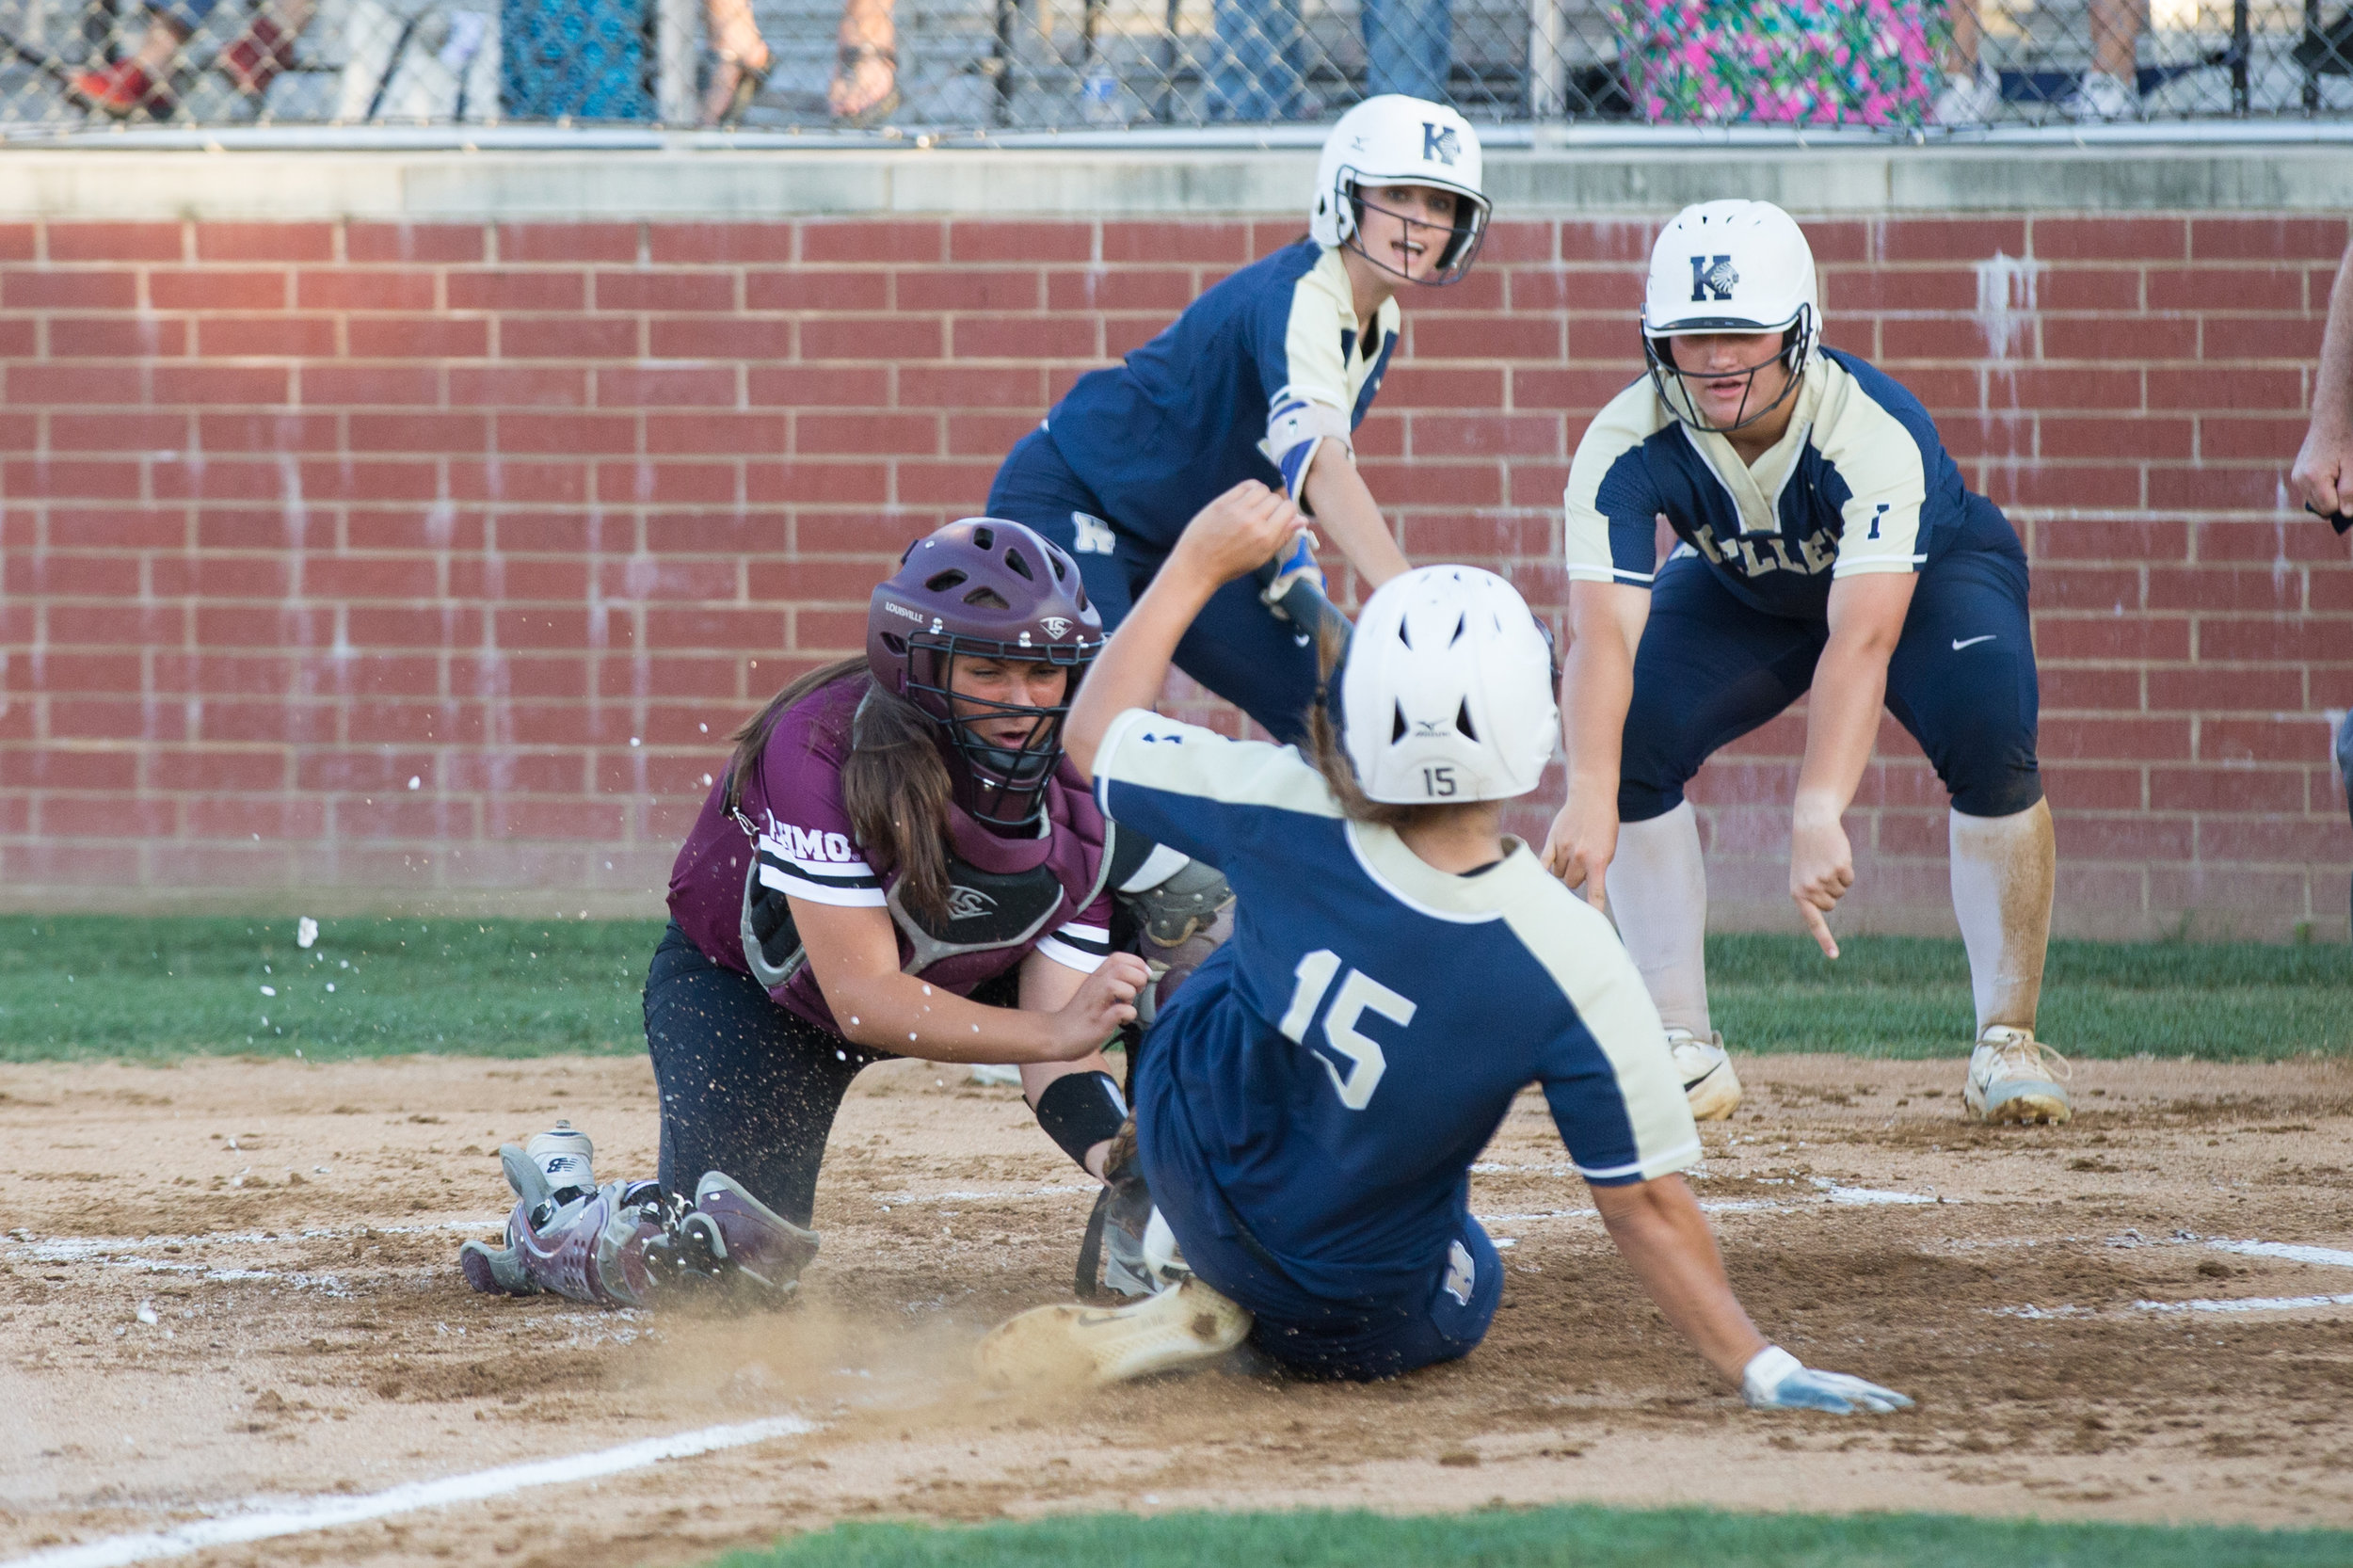 5_18 Wylie Softball-135.jpg